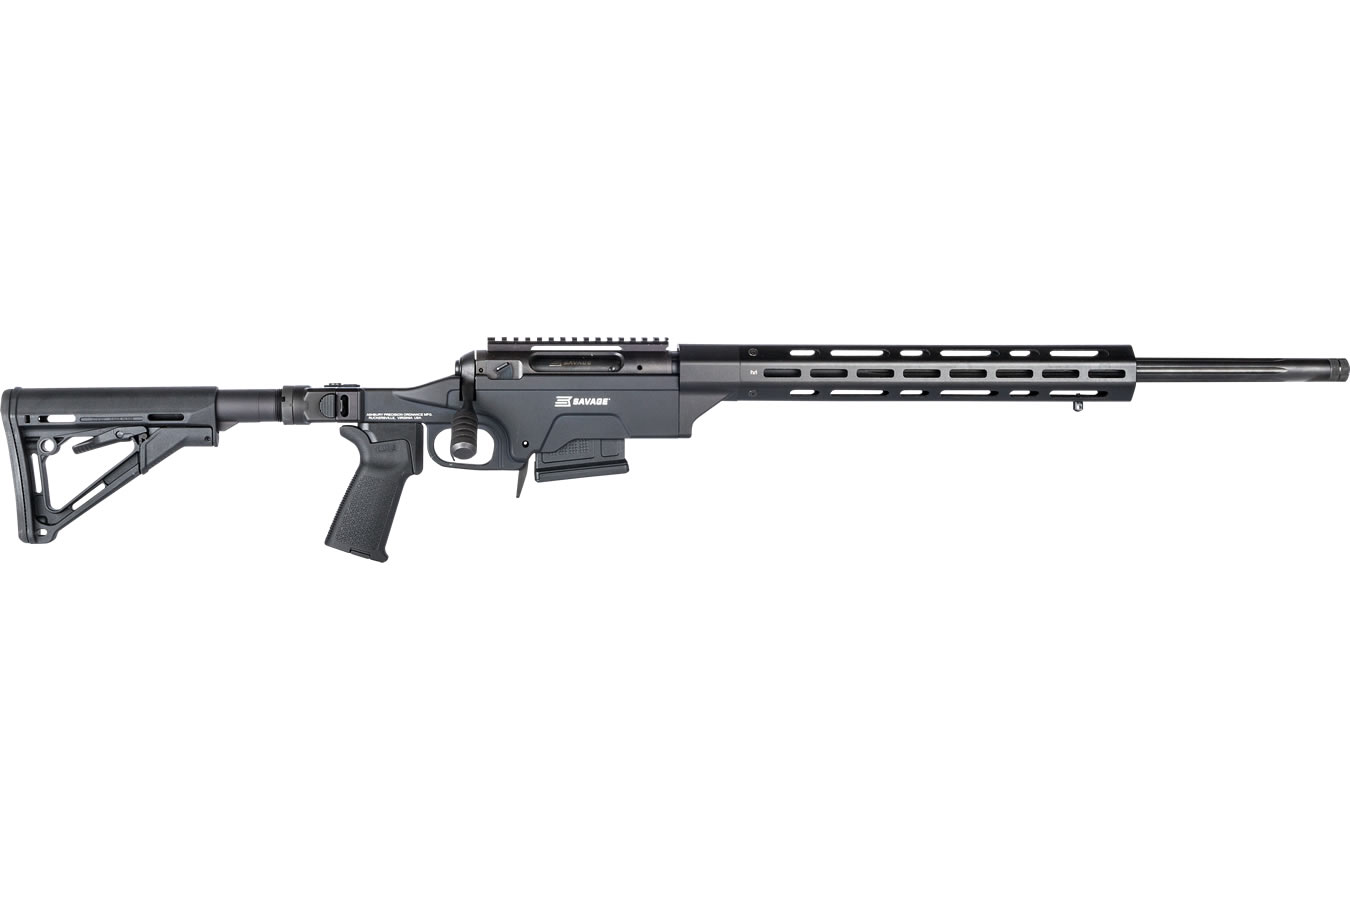 Savage 10 Ashbury 308 Precision Rifle with 24-Inch Fluted Barrel | Sportsman's Outdoor Superstore